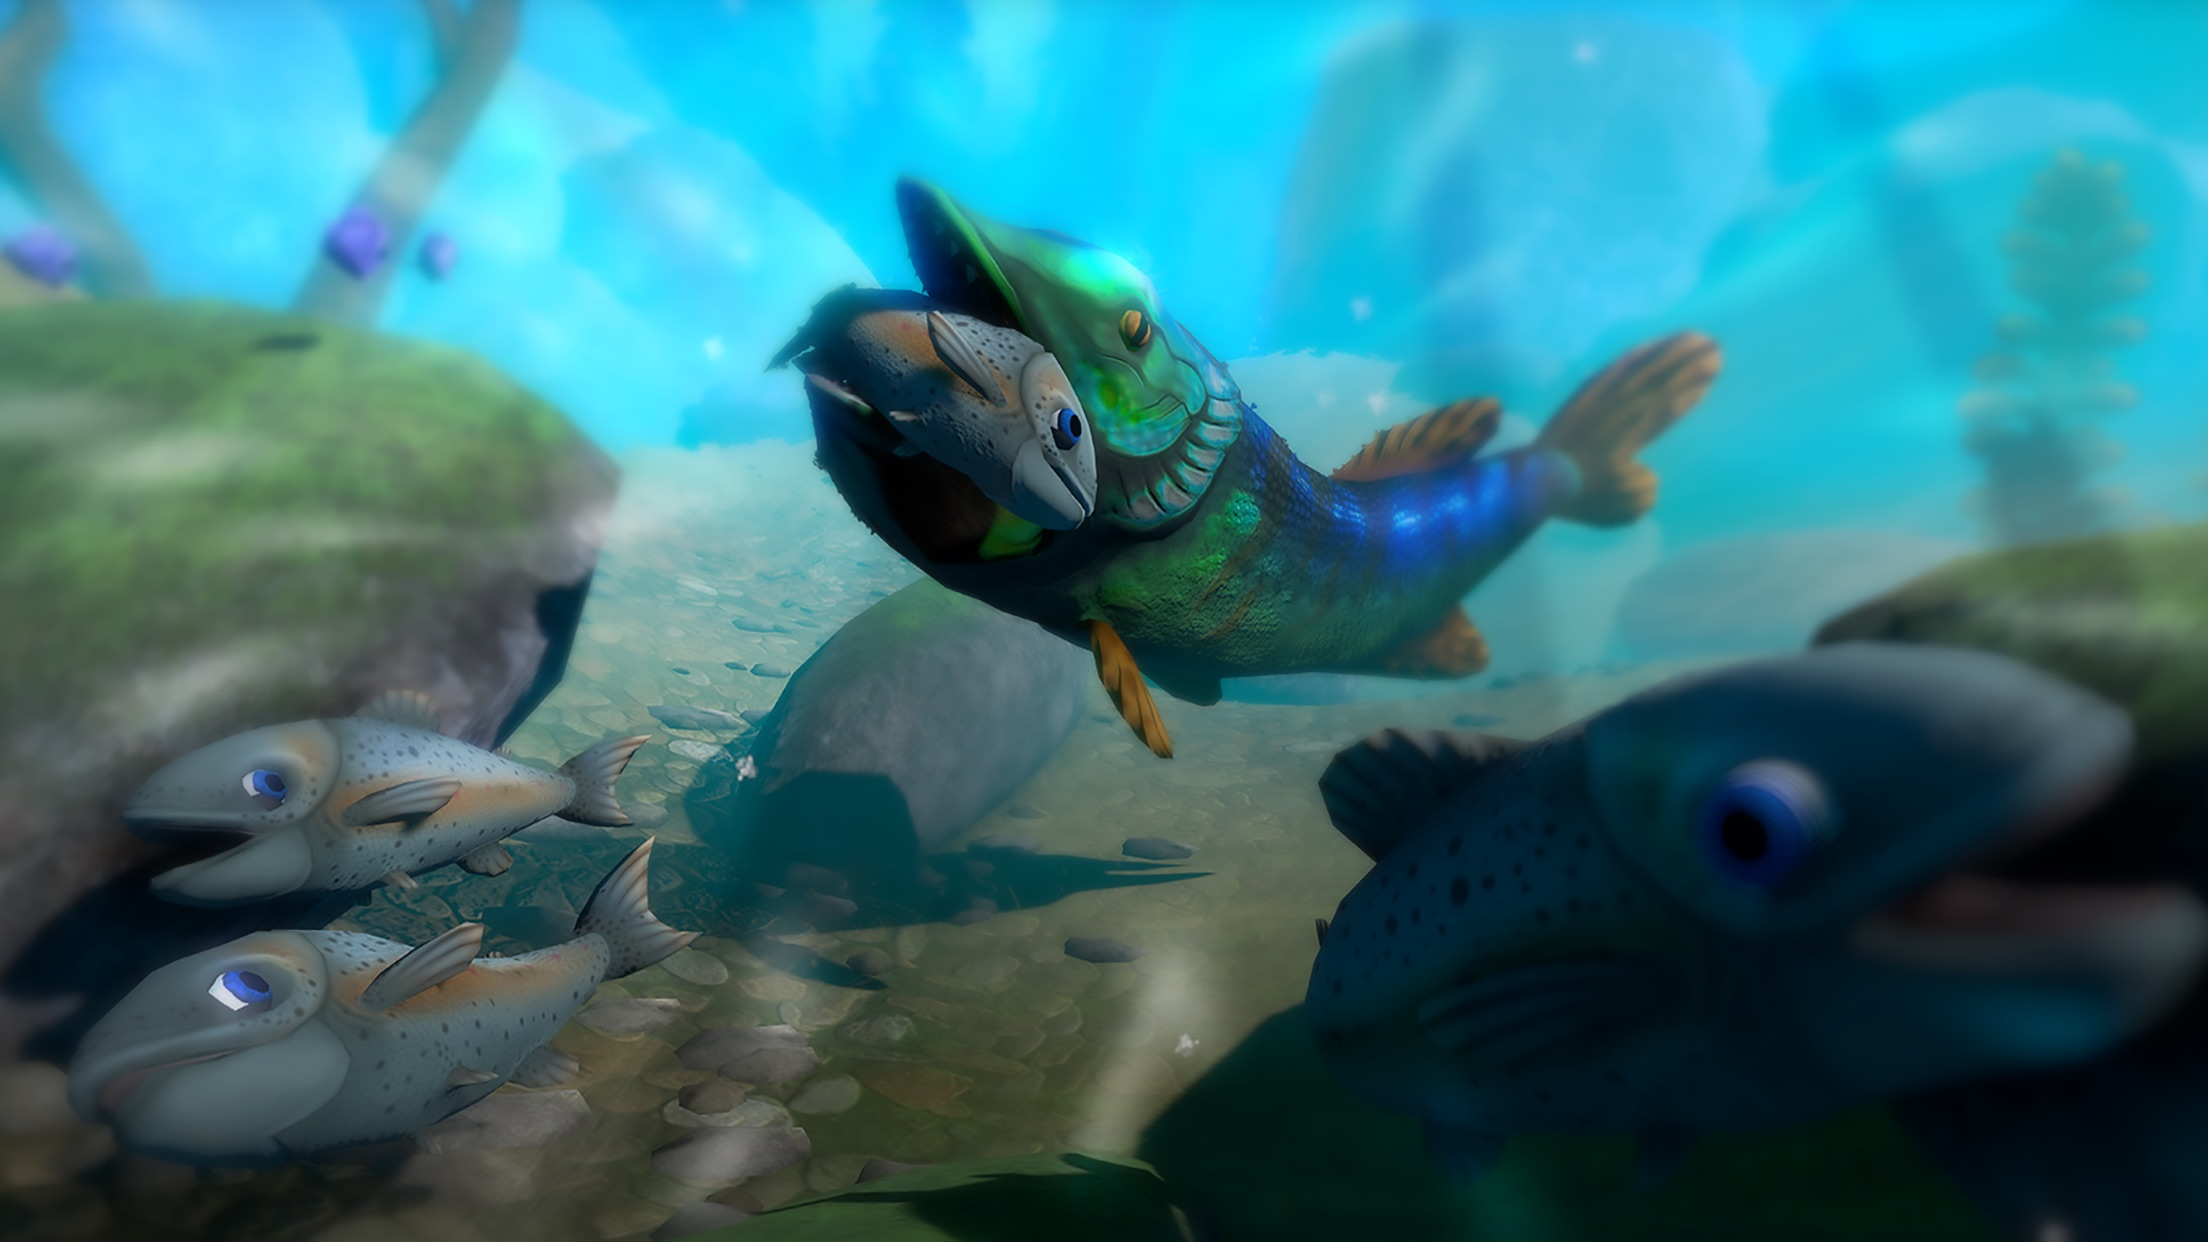 Pro fish simulator feed and grow battle by stefan jodies for Battle fish 2